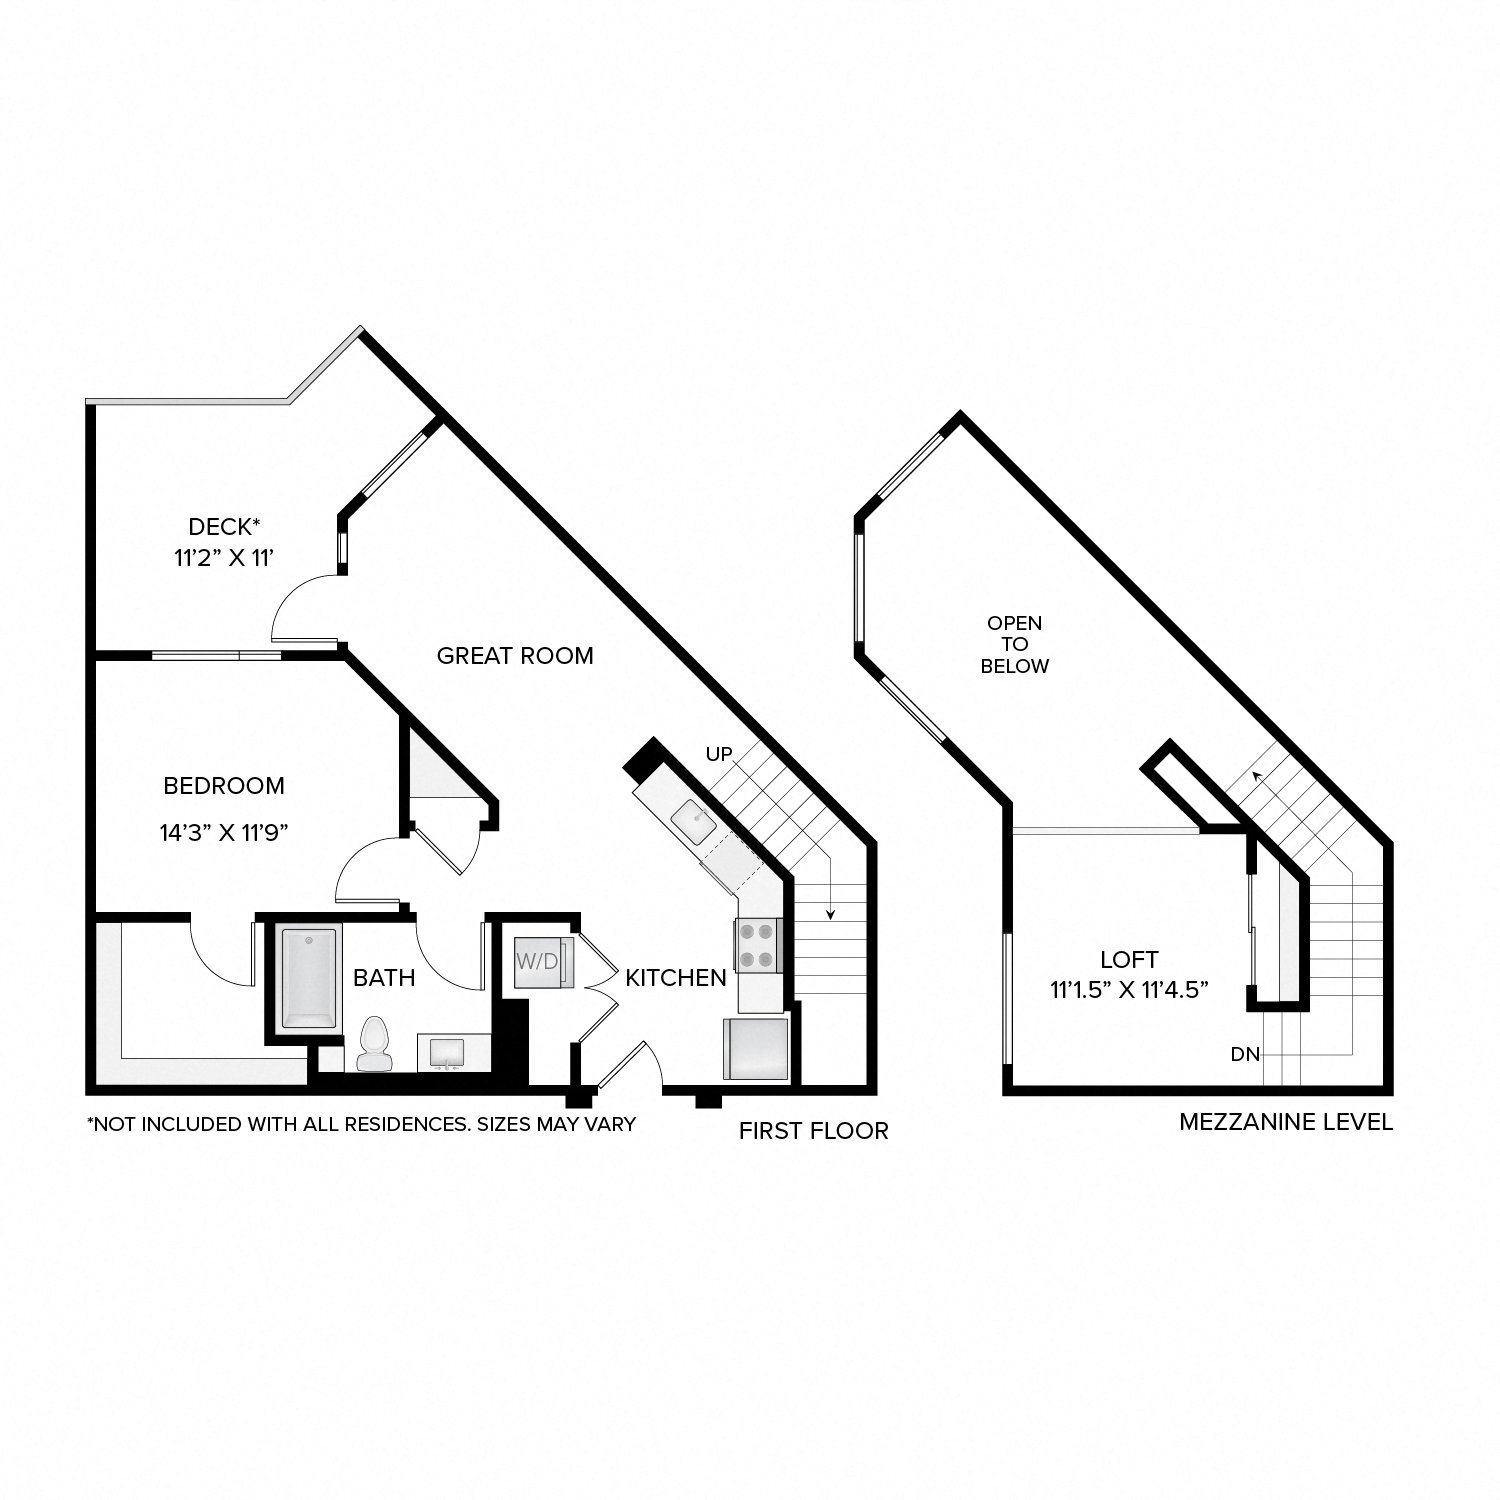 Diagram of the Jackson Deluxe Loft floor plan. One bedroom, one bathroom, an open kitchen and living area, a loft, washer dryer, and in select residences, a deck.